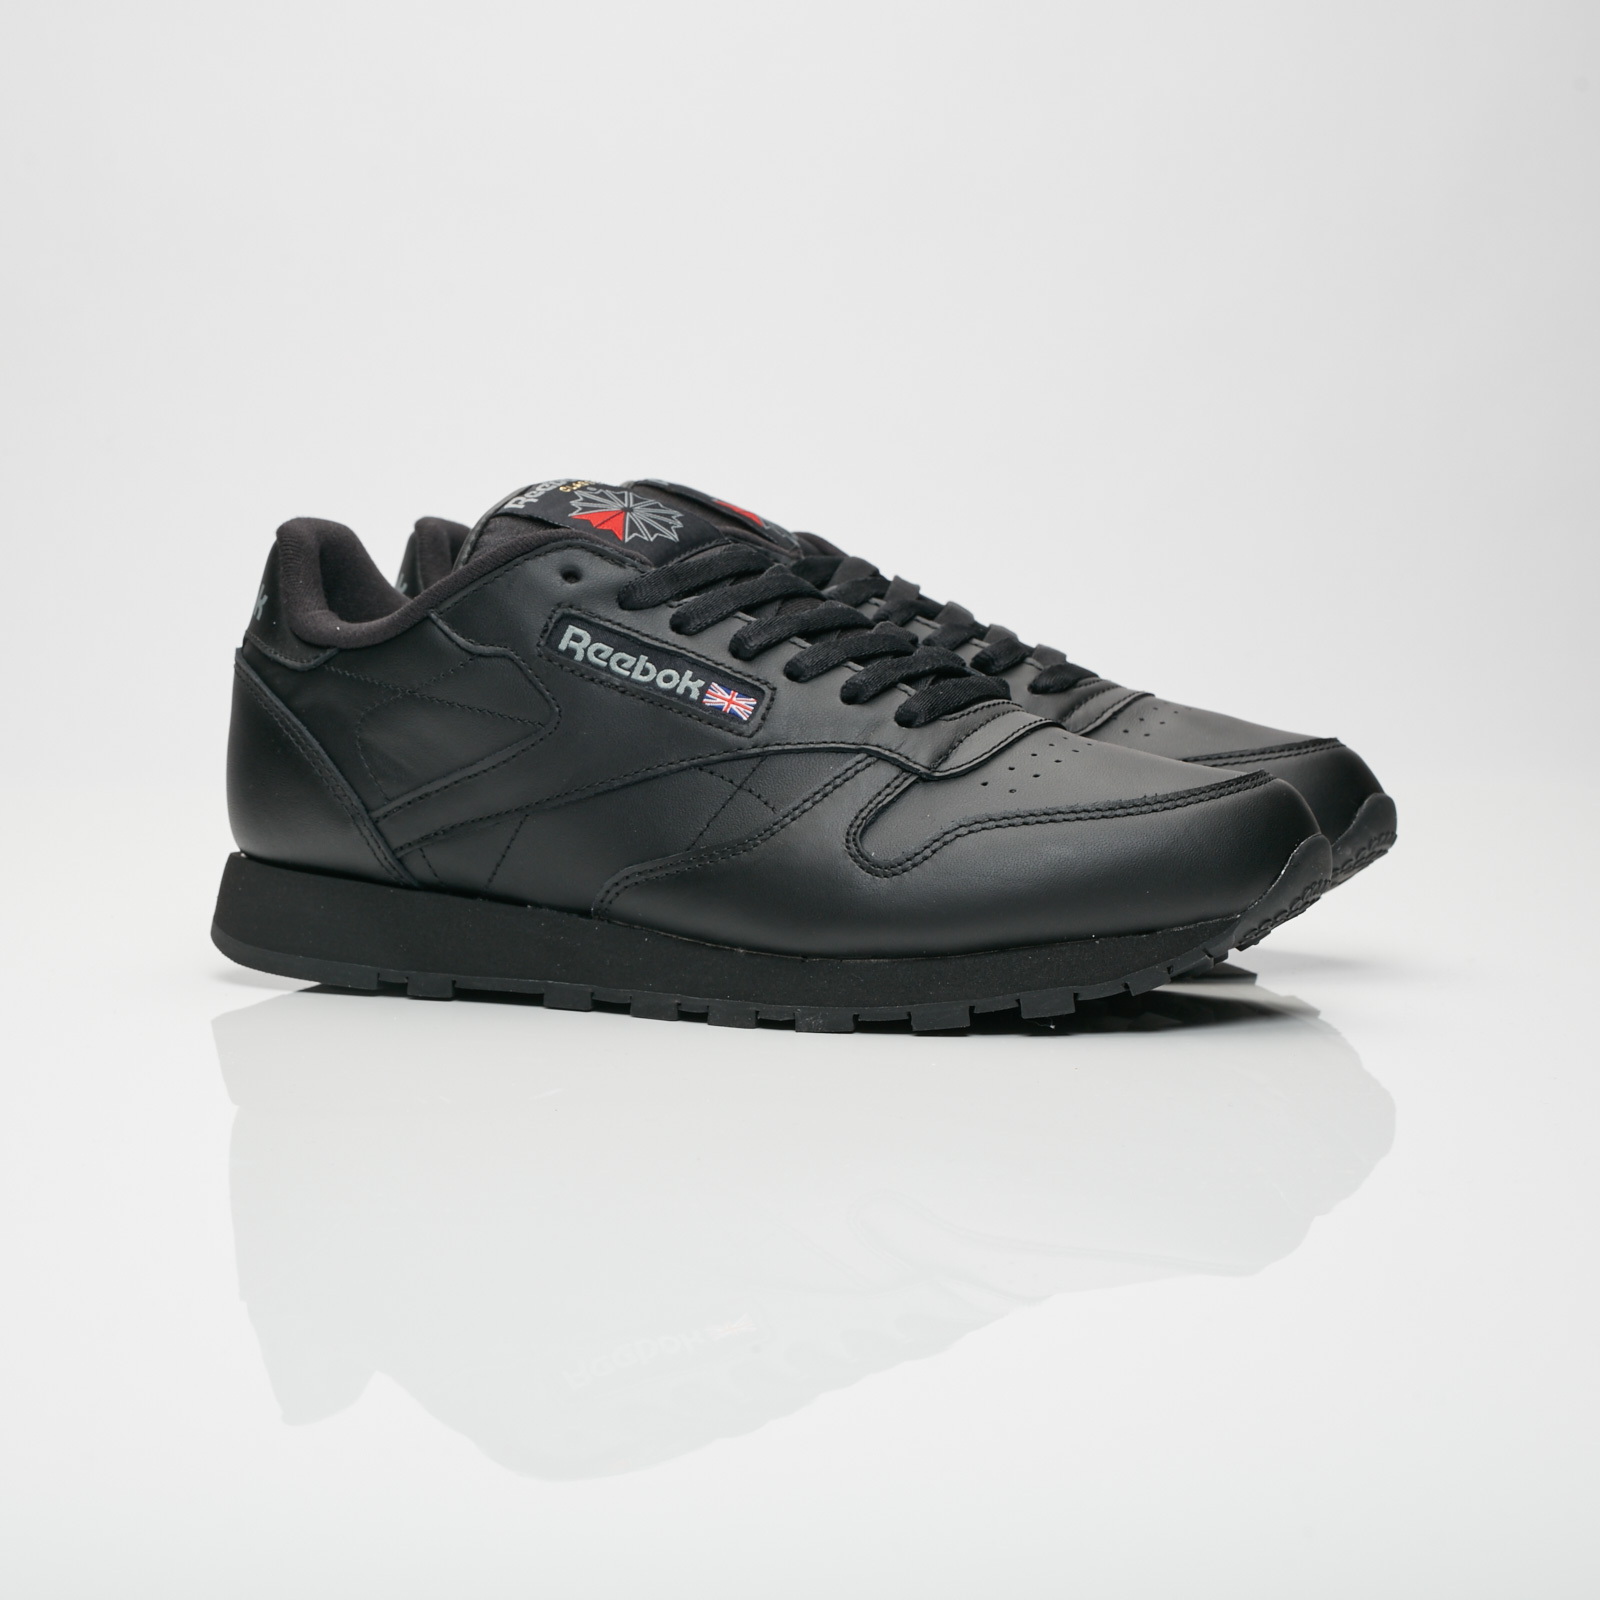 Reebok Classic Leather - 2267 - Sneakersnstuff  105d946a6